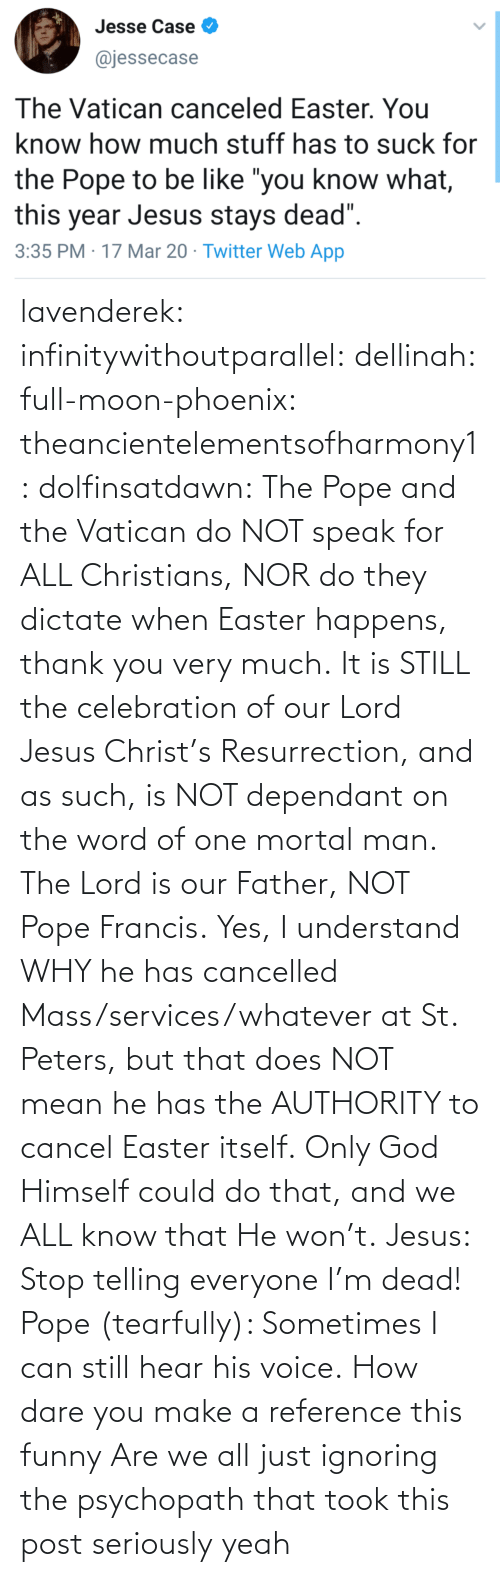 Easter: lavenderek: infinitywithoutparallel:  dellinah:  full-moon-phoenix:   theancientelementsofharmony1:  dolfinsatdawn:    The Pope and the Vatican do NOT speak for ALL Christians, NOR do they dictate when Easter happens, thank you very much. It is STILL the celebration of our Lord Jesus Christ's Resurrection, and as such, is NOT dependant on the word of one mortal man. The Lord is our Father, NOT Pope Francis. Yes, I understand WHY he has cancelled Mass/services/whatever at St. Peters, but that does NOT mean he has the AUTHORITY to cancel Easter itself. Only God Himself could do that, and we ALL know that He won't.    Jesus: Stop telling everyone I'm dead! Pope (tearfully): Sometimes I can still hear his voice.    How dare you make a reference this funny    Are we all just ignoring the psychopath that took this post seriously     yeah